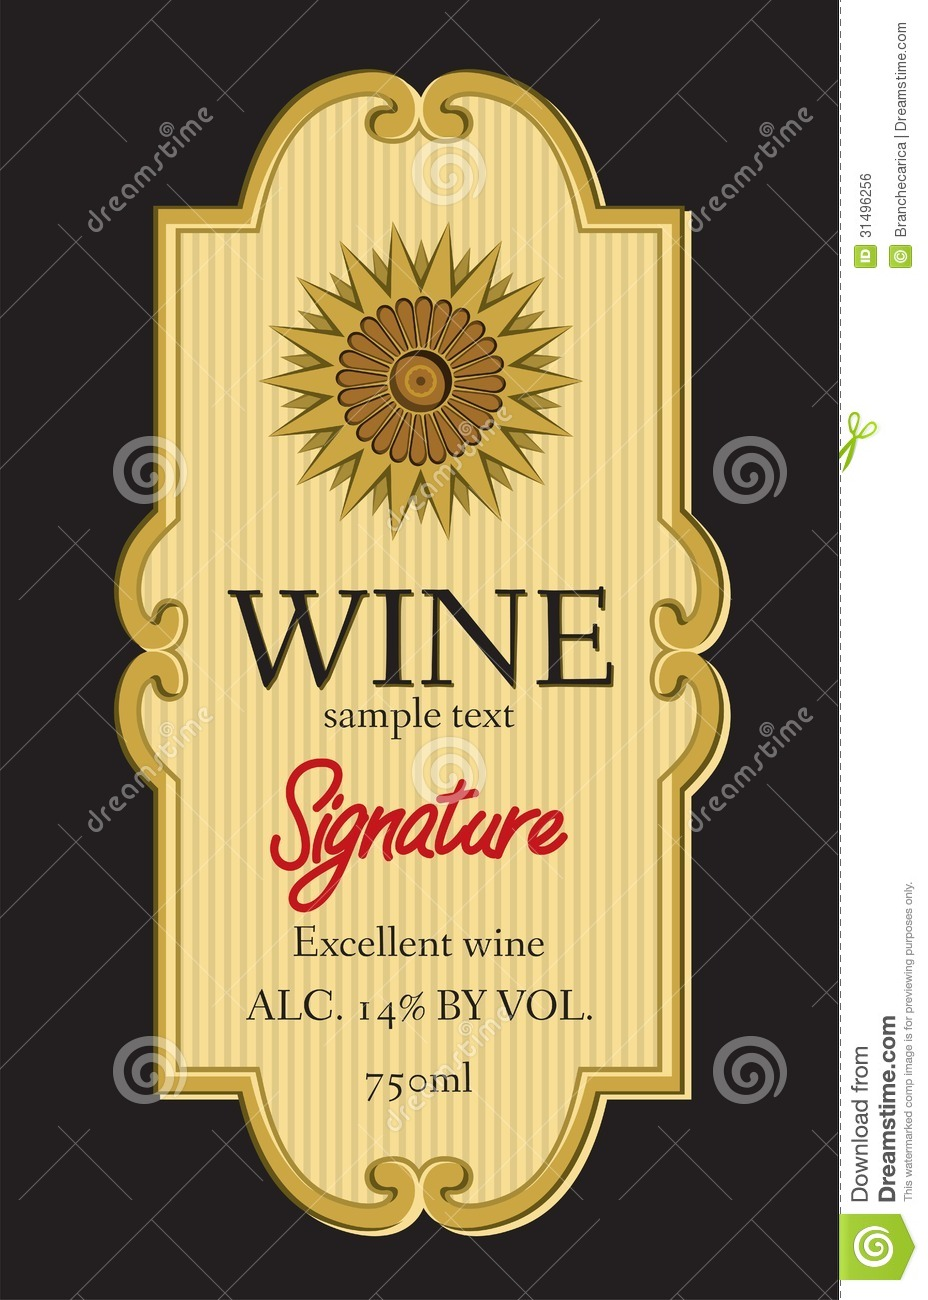 Wine Label Design  Free Wine Bottle Label Templates